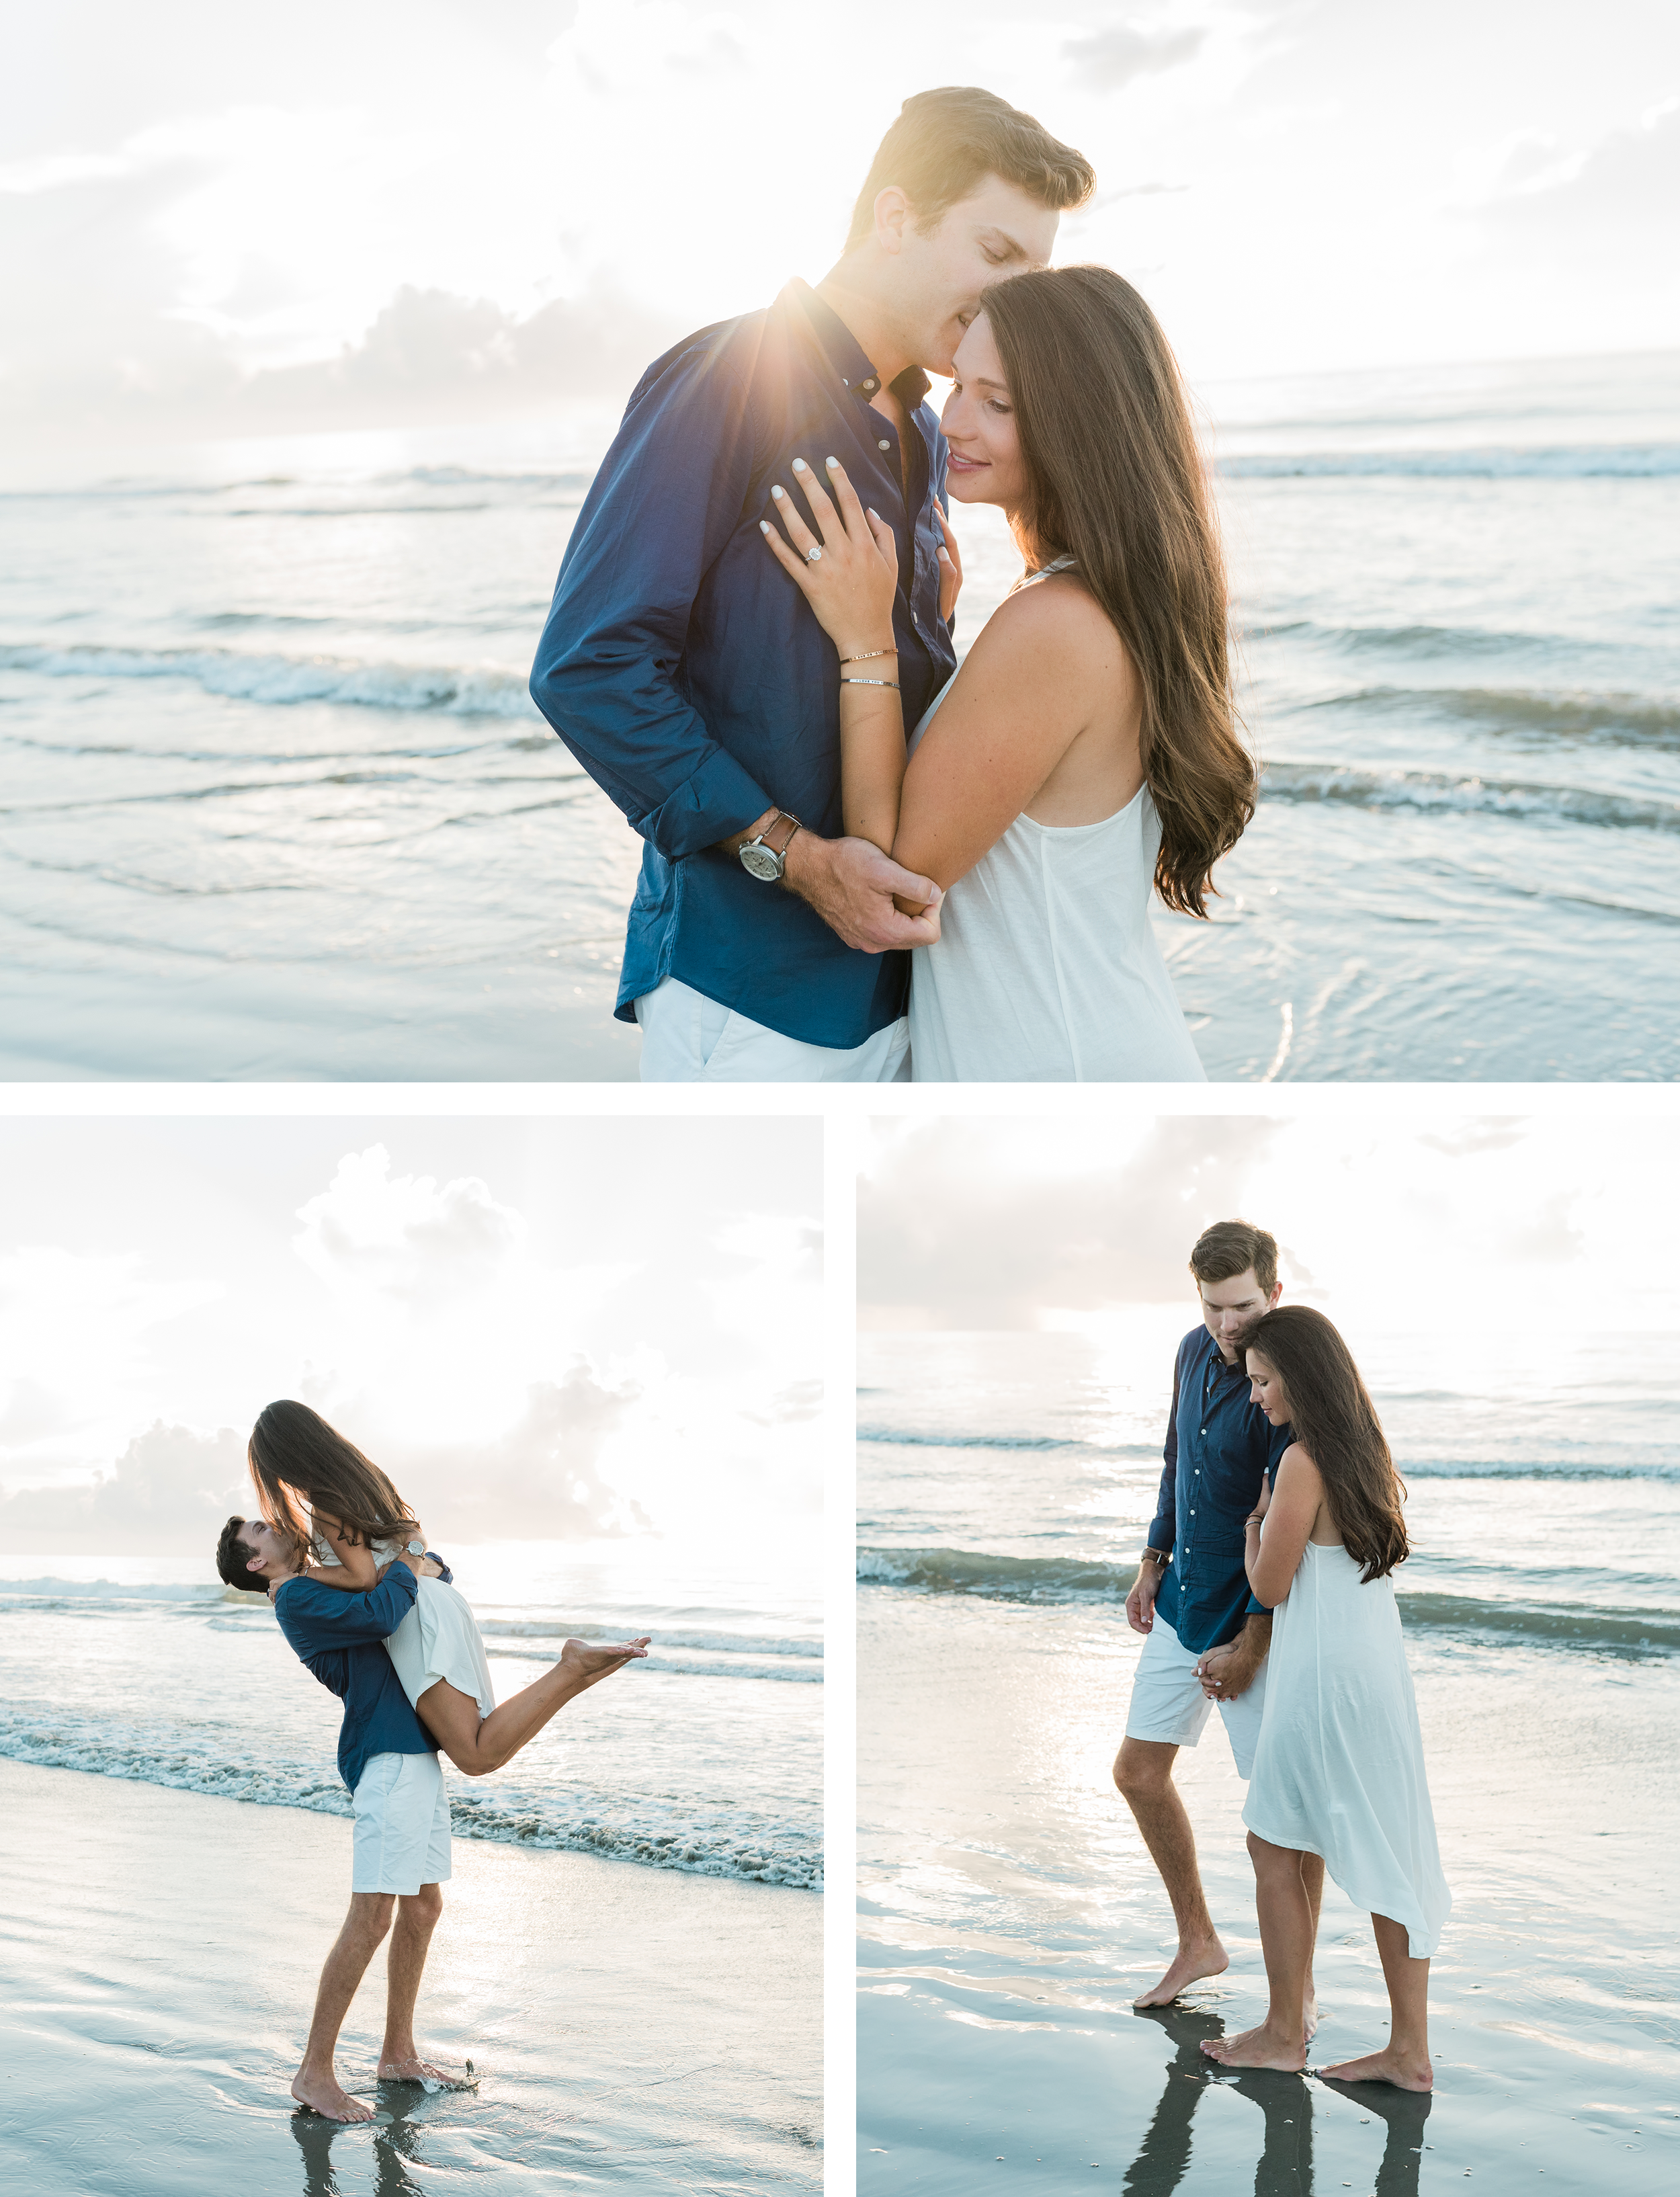 Evan Haley Engagement_Pawleys Island SC_Kristen Paige Photography_Gallery 15.png